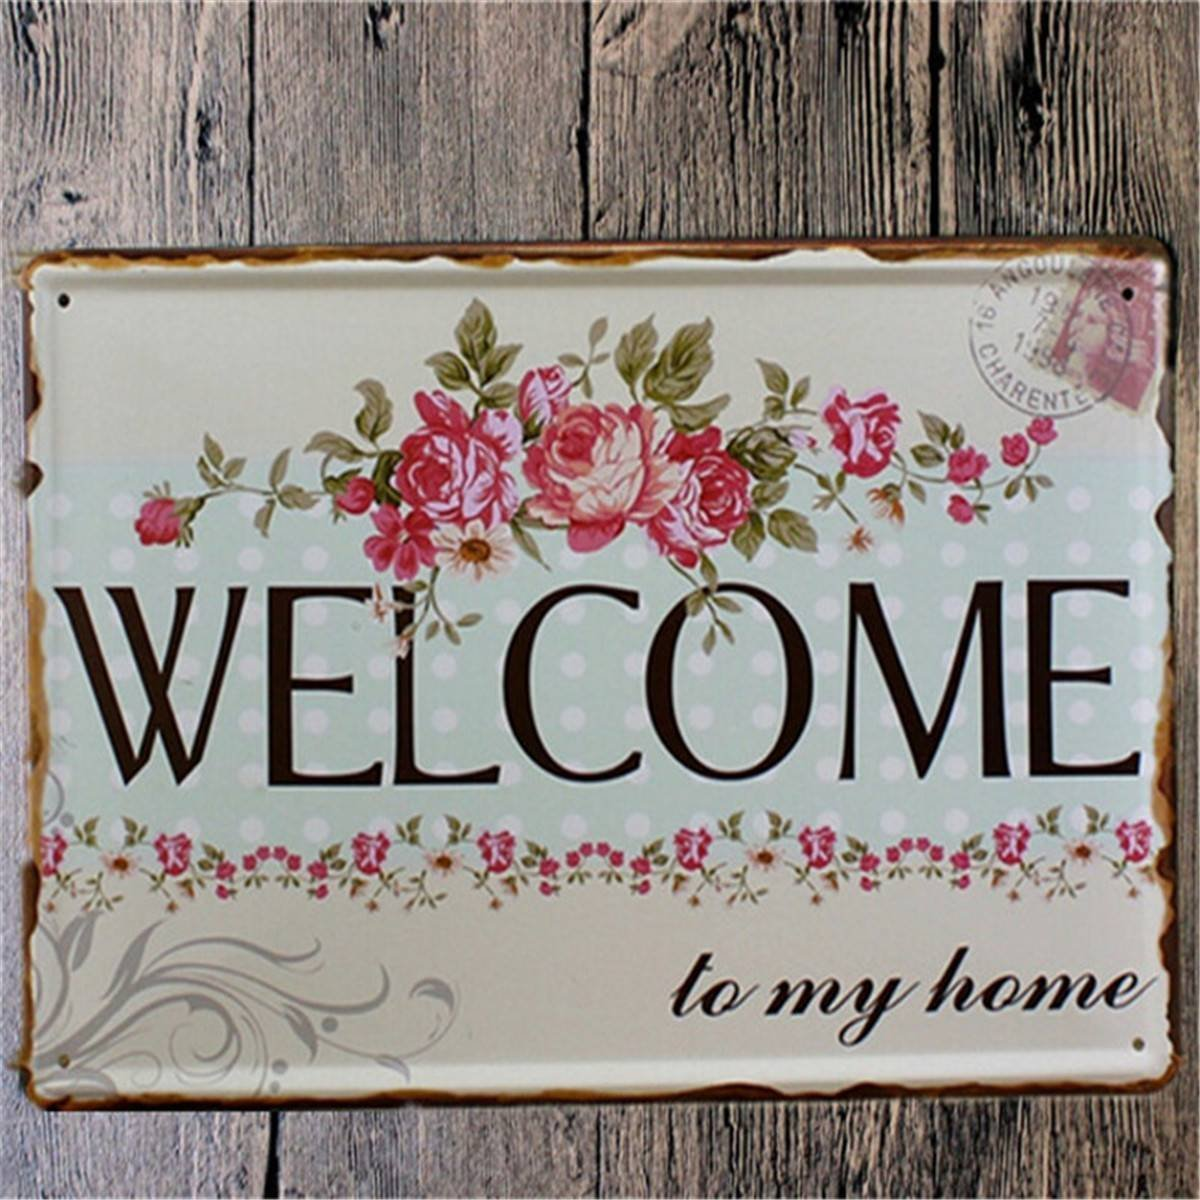 welcome home metal shabby chic vintage sign home wall decor - Shabby Chic Wall Decor